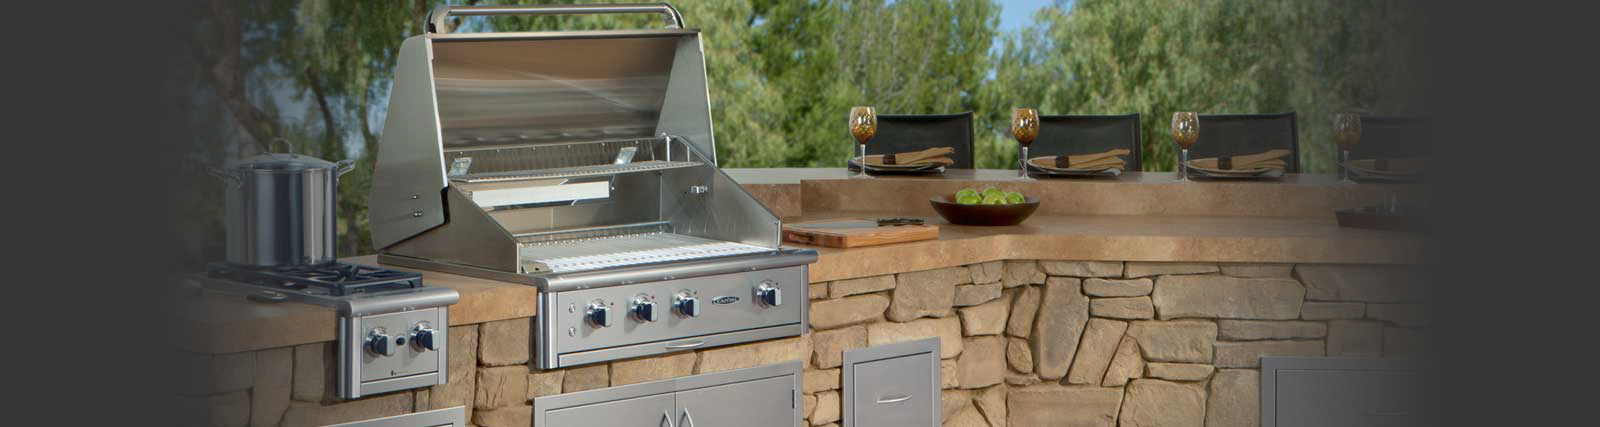 Outdoor Accessory Capital Cooking Luxury Home Liances